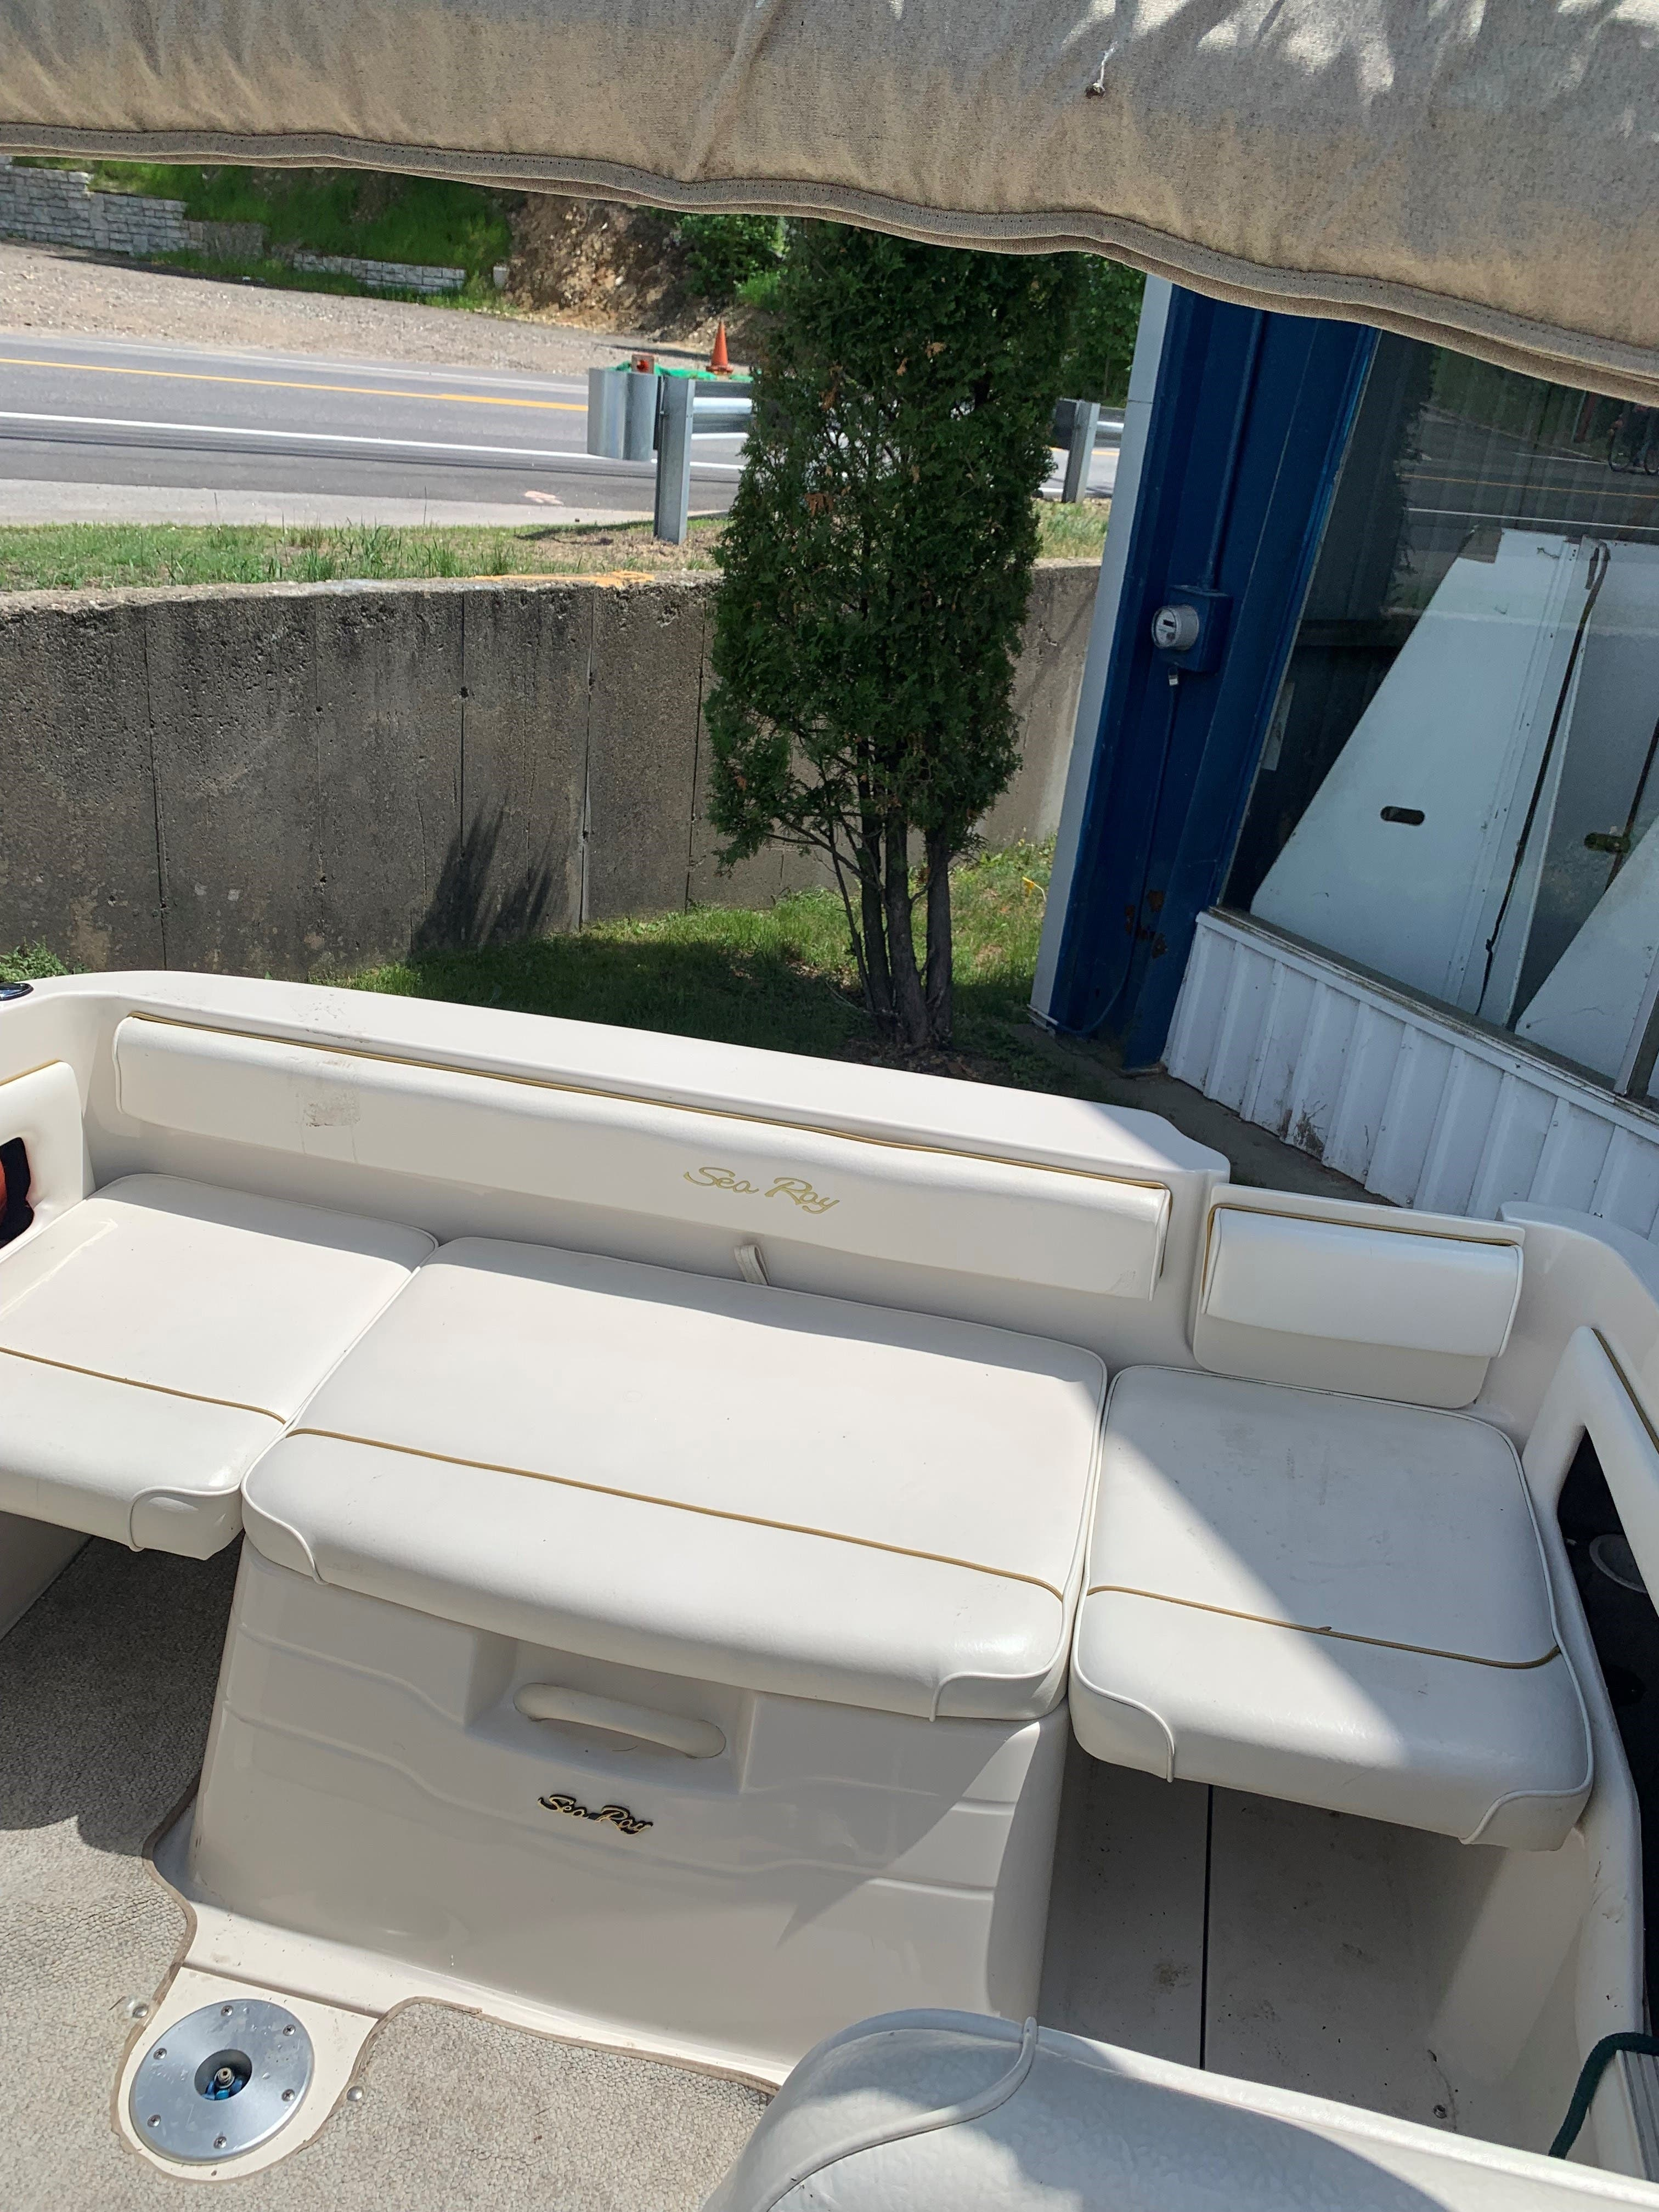 2001 Sea Ray boat for sale, model of the boat is 215EC & Image # 4 of 8